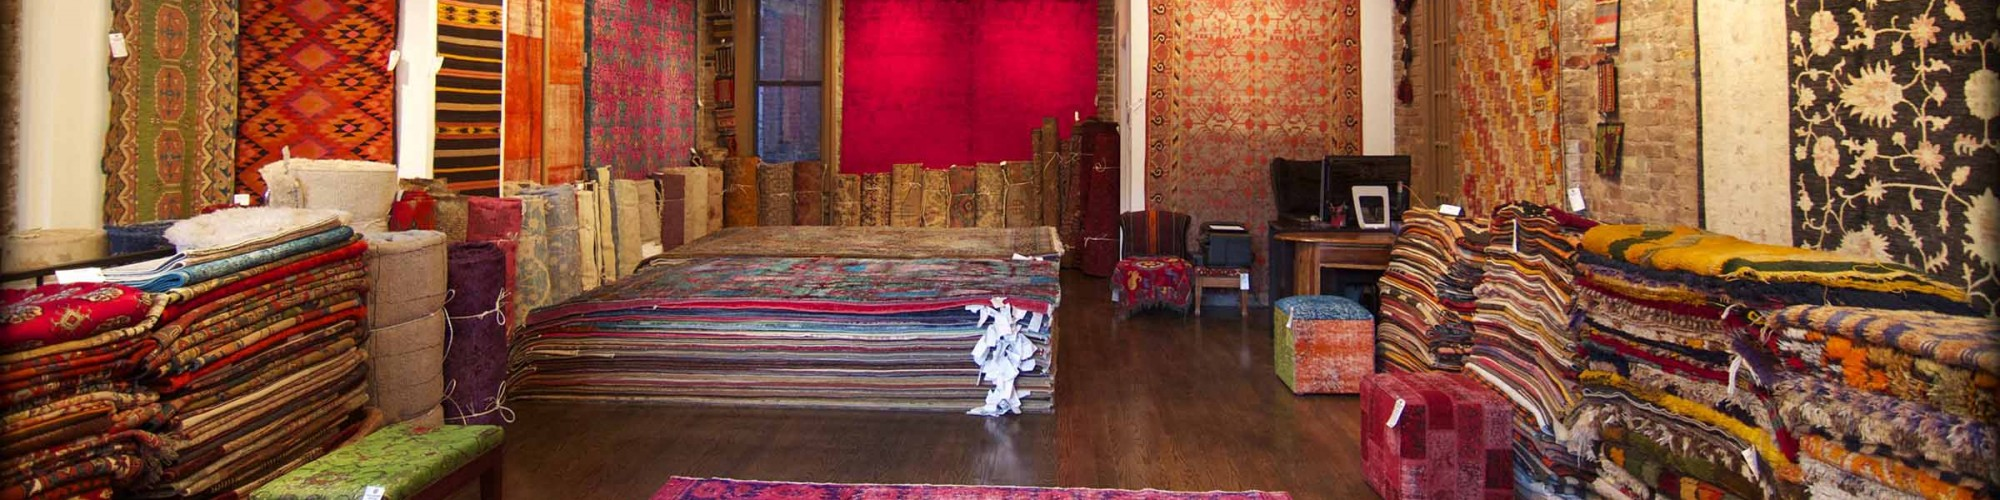 Oriental Rug Cleaning Store- Carpet Culture- Best Carpet Cleaners in New Jersey